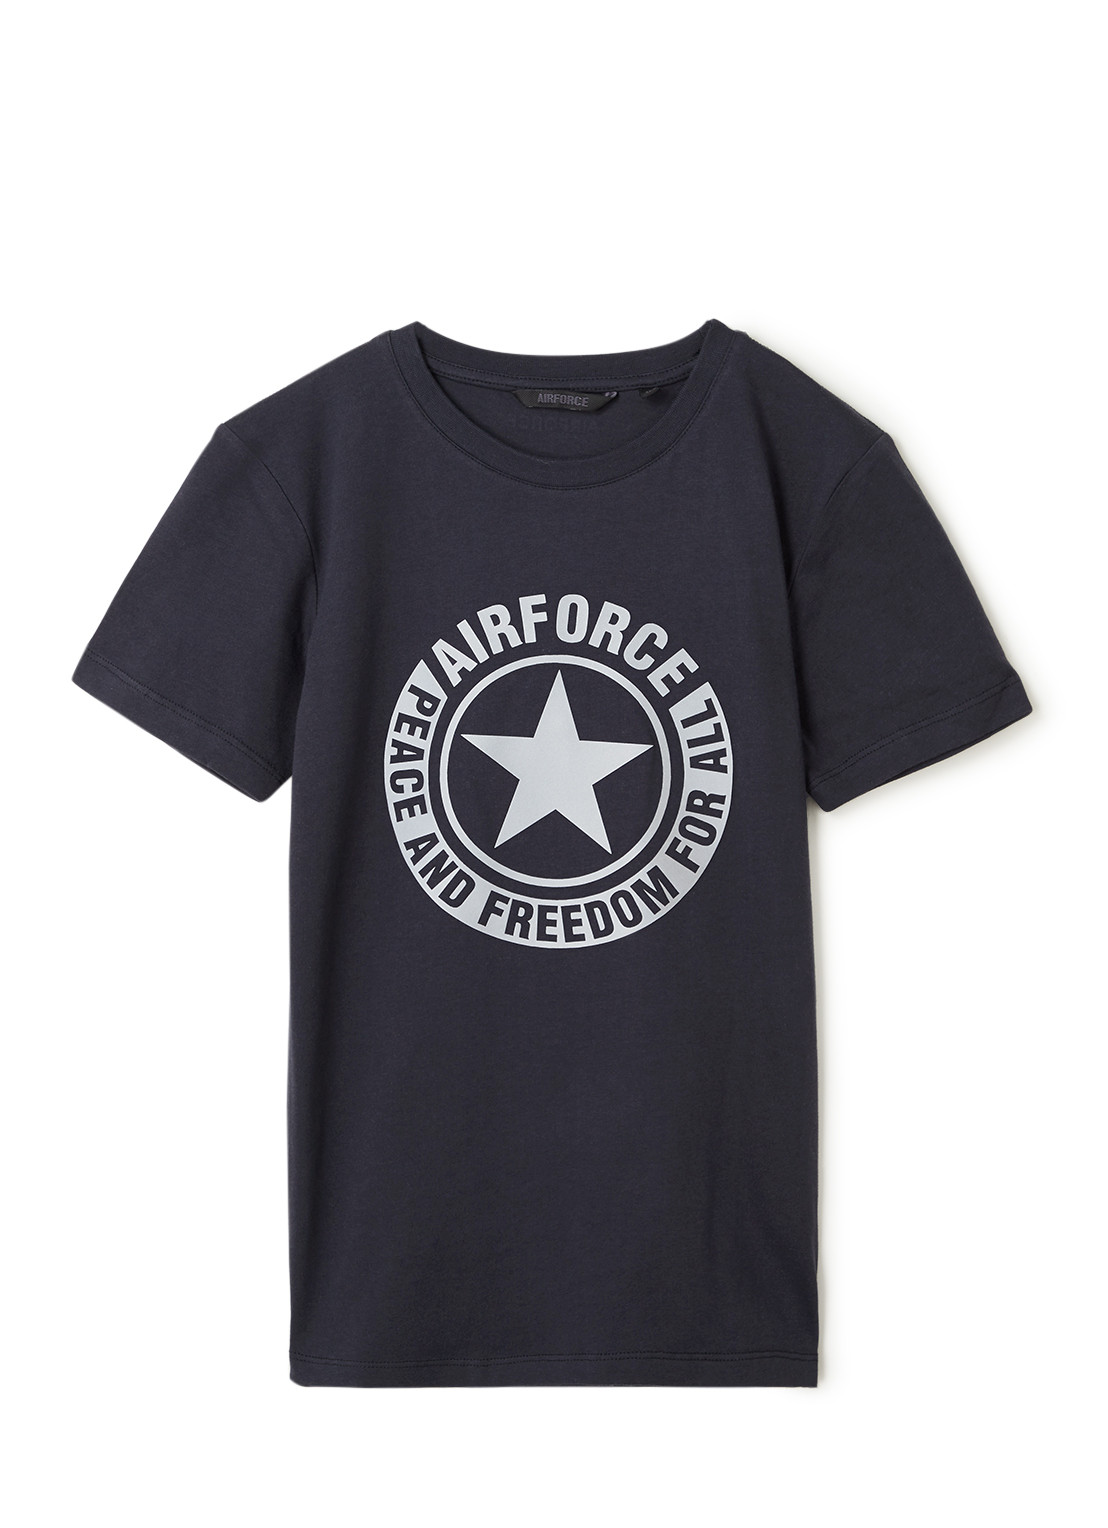 Airforce T-shirt met reflecterende logoprint